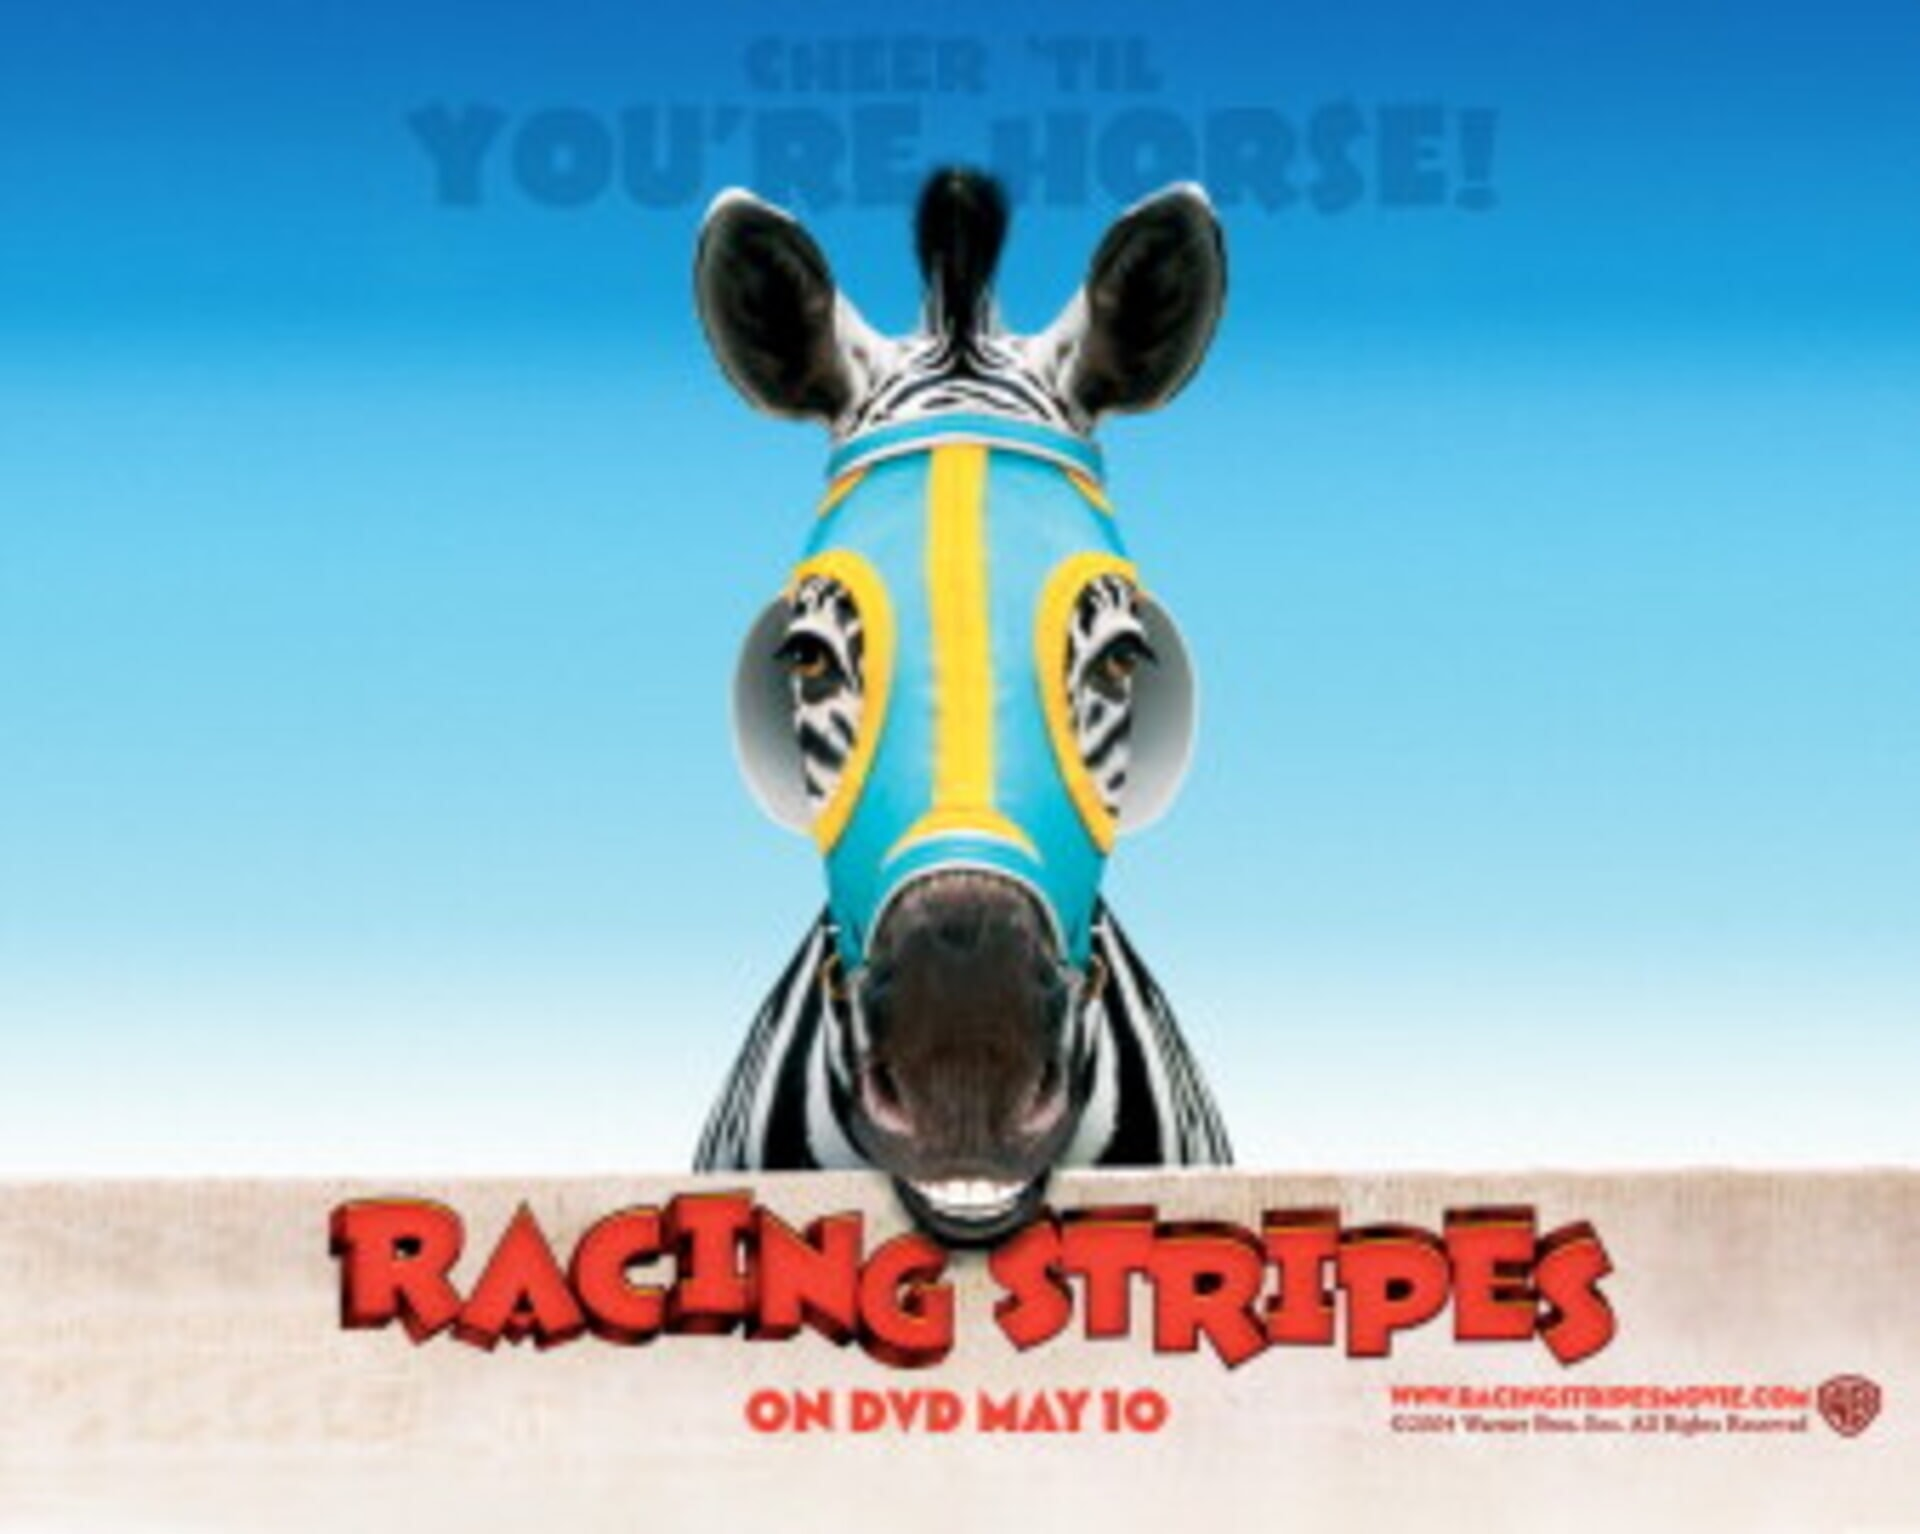 Racing Stripes - Image 13